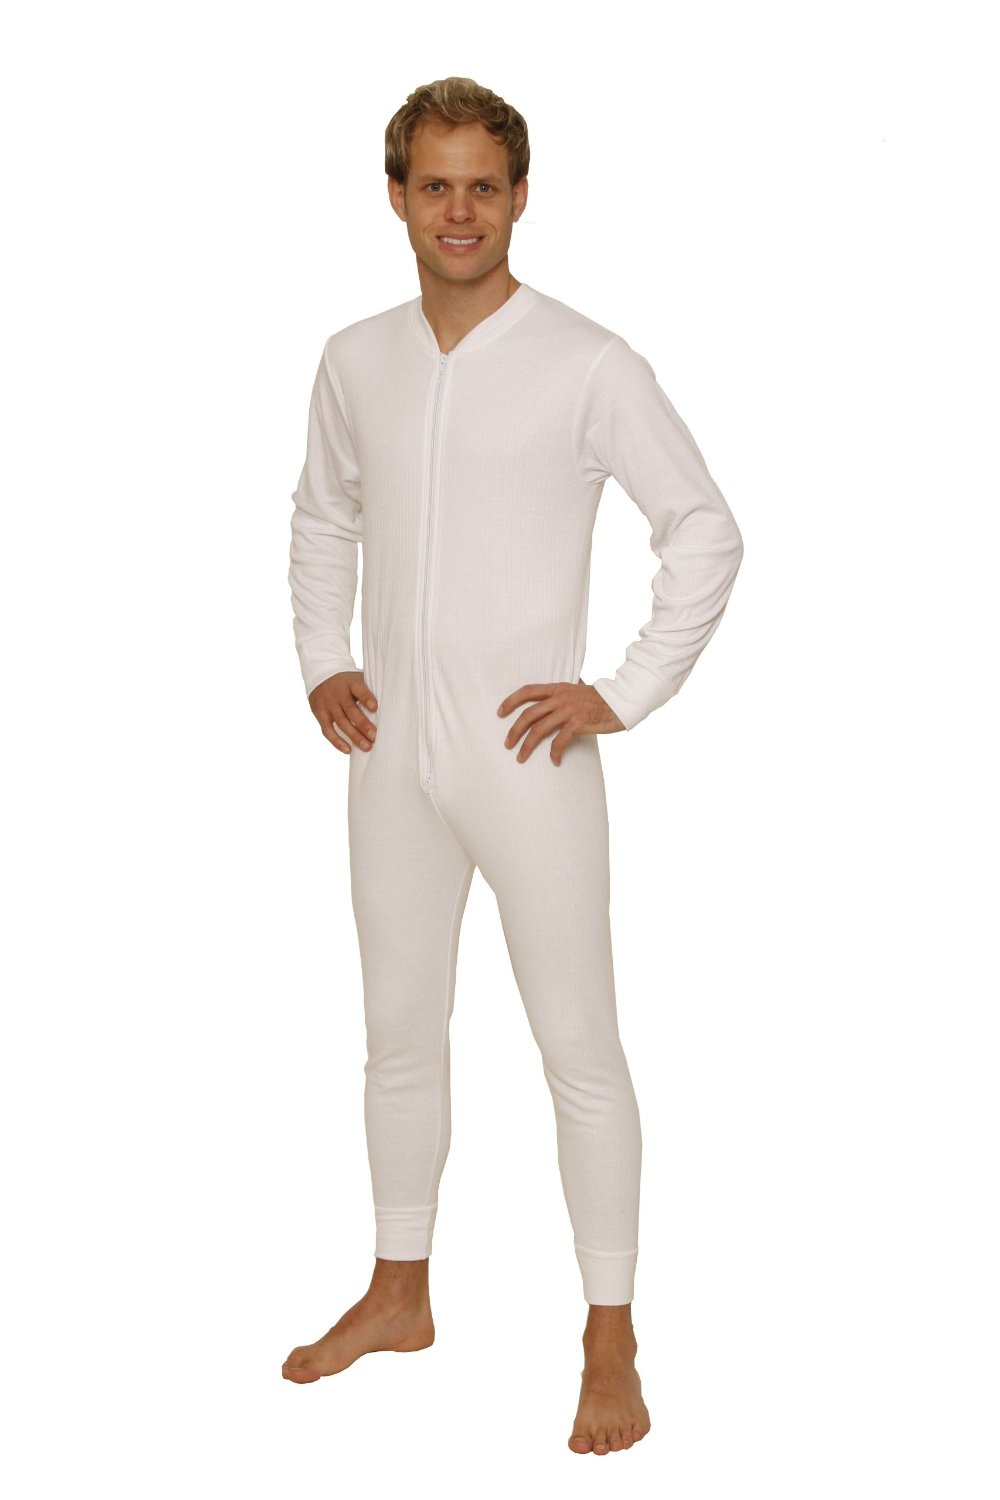 octave thermal underwear mens all in one thermal. Black Bedroom Furniture Sets. Home Design Ideas